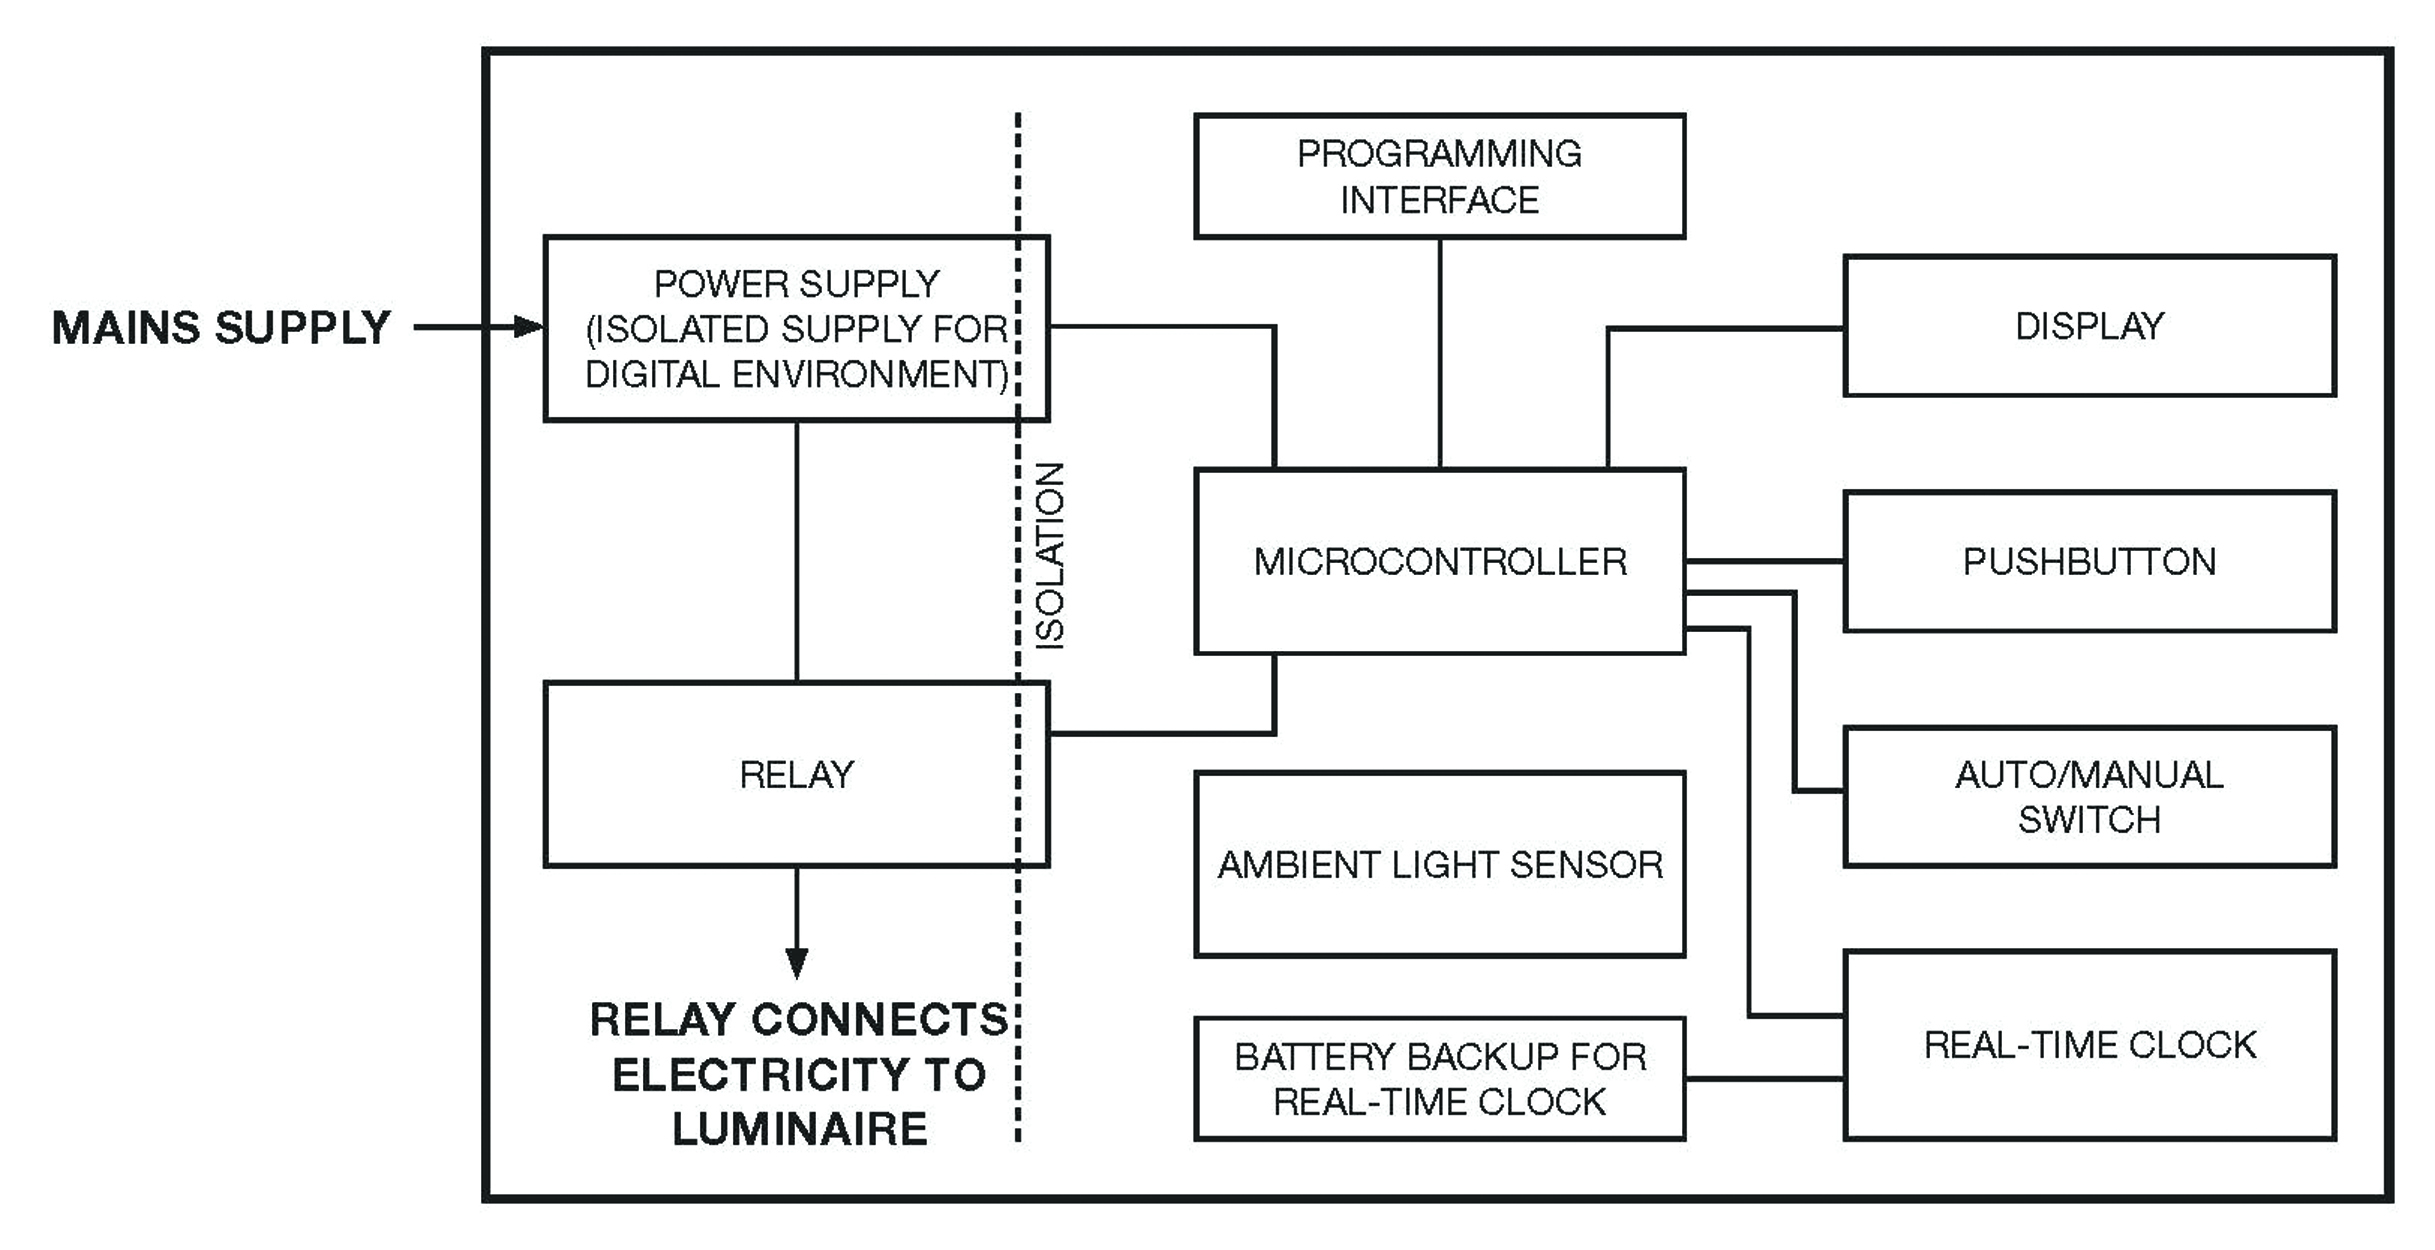 LED smart lighting for a smarter IoT